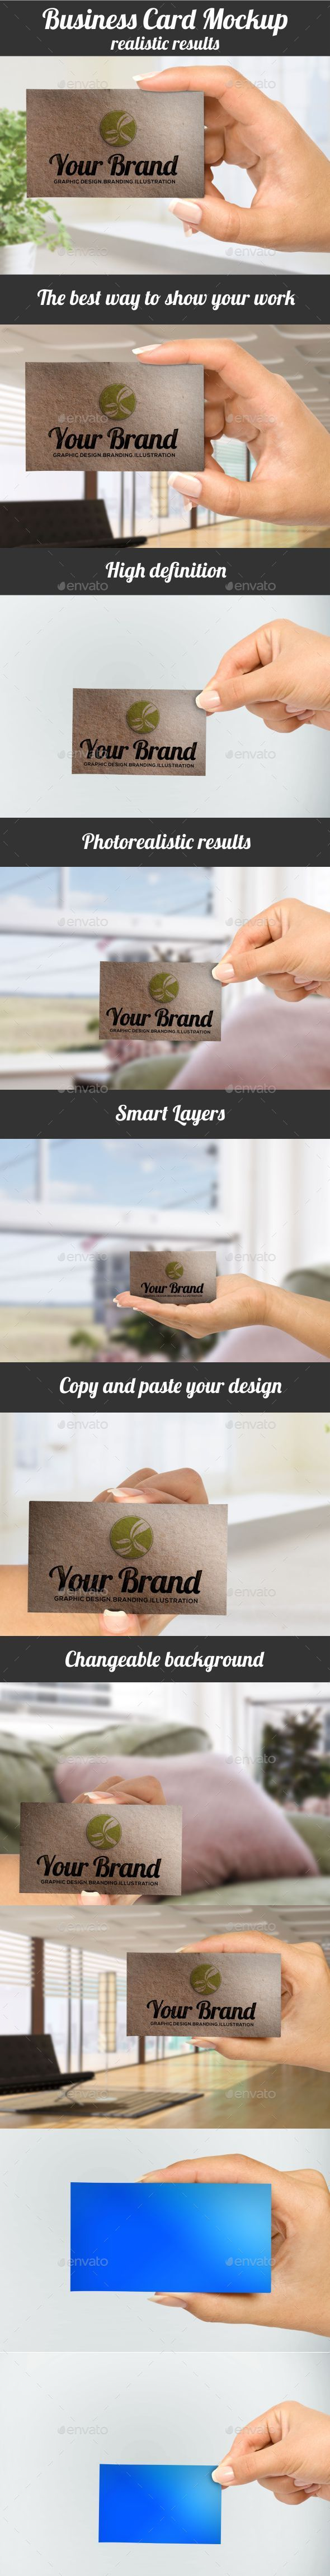 Business Cards Mockup Pack - Business Cards Print